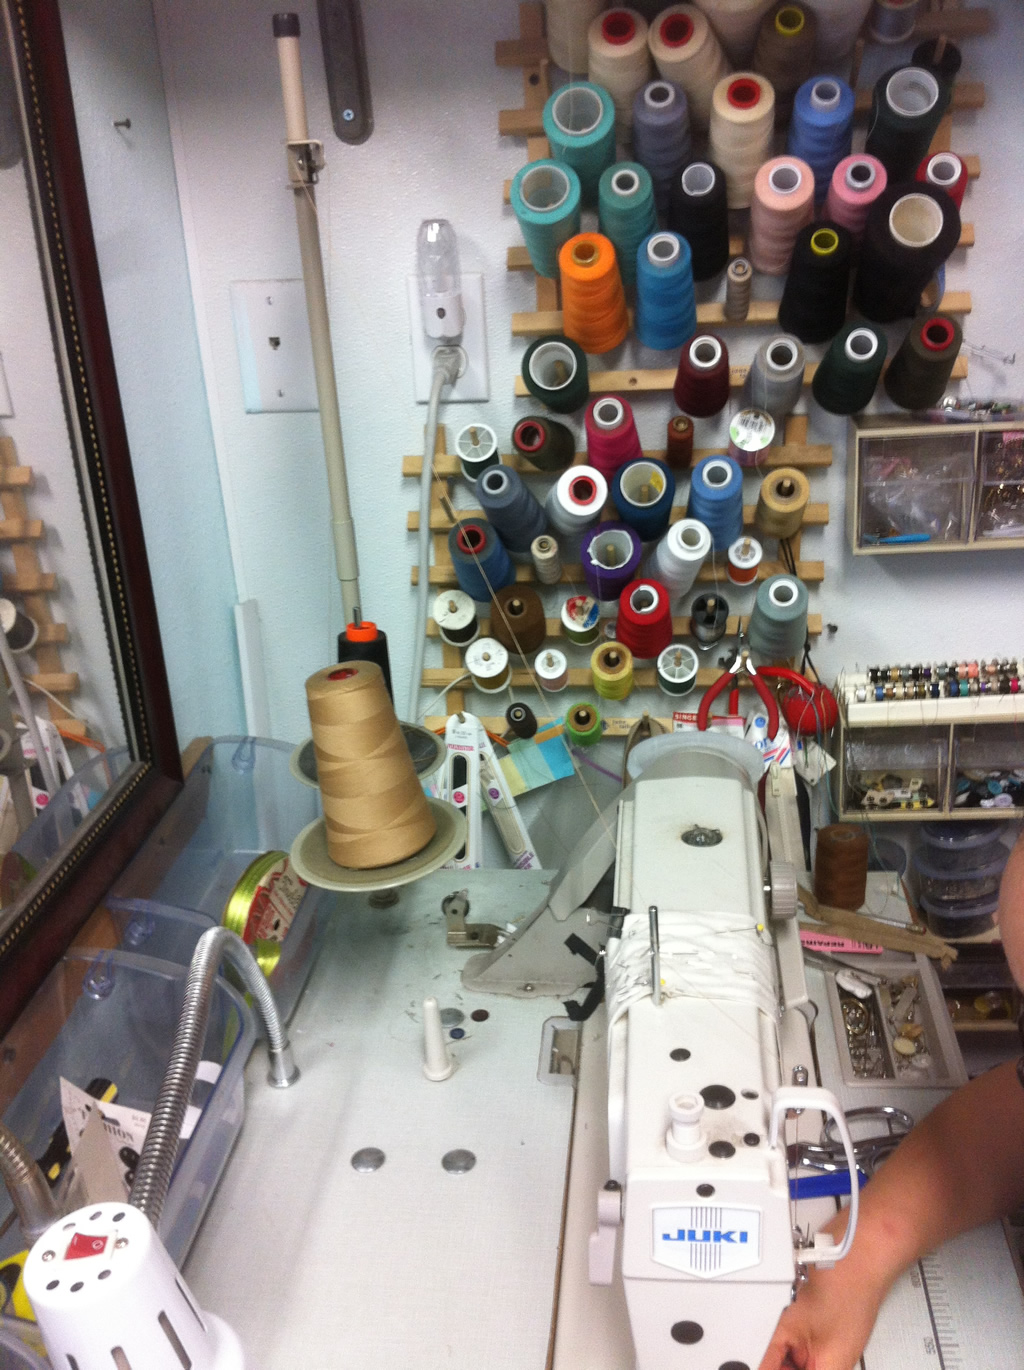 Threads, Bobbins, and Juki Sewing Machine